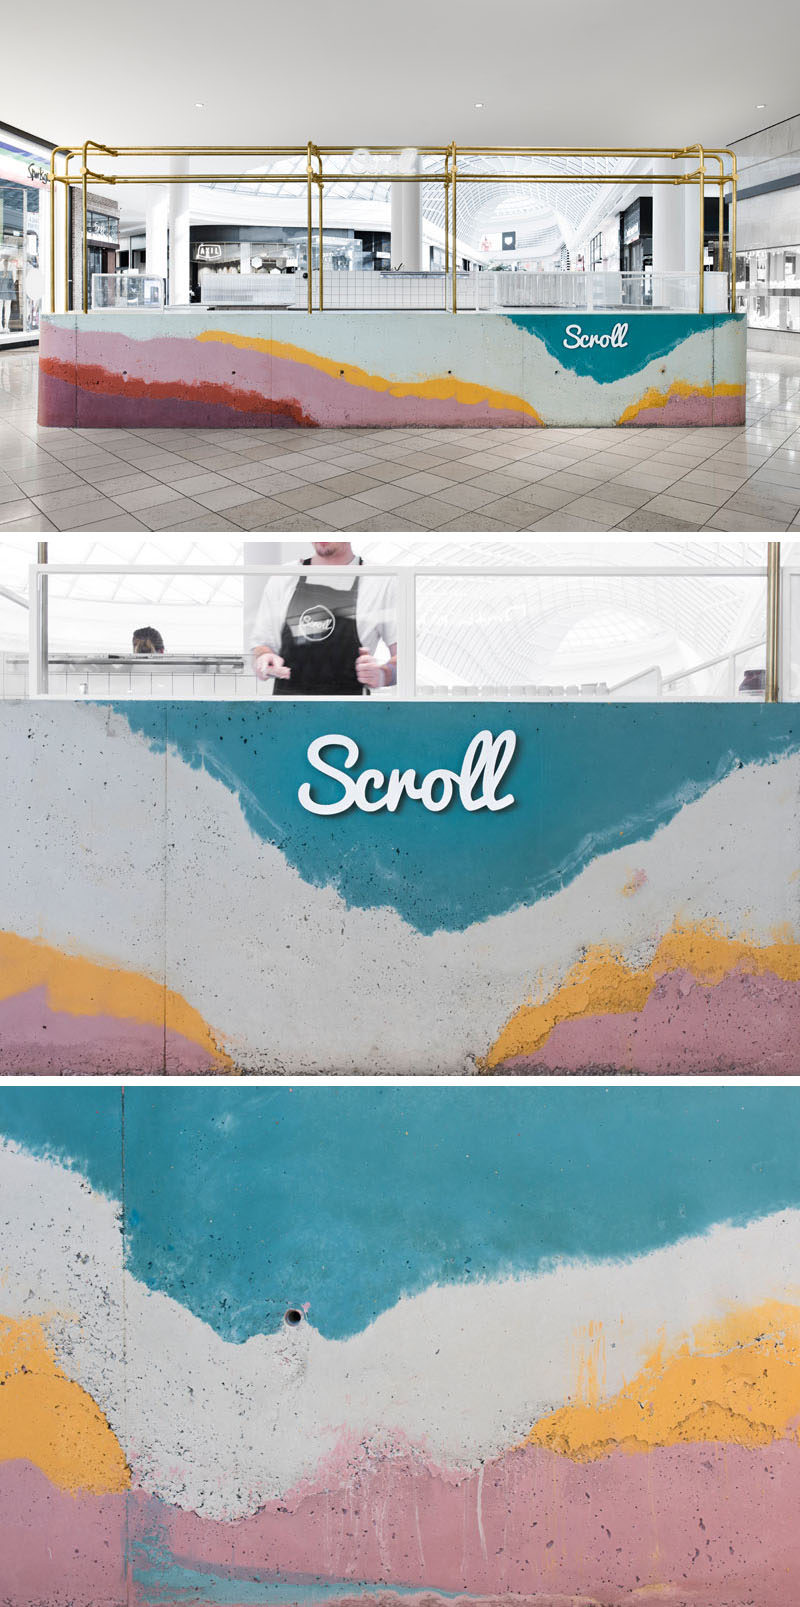 Layers of colorful concrete were poured onsite into a formwork mold to create a bar for Scroll Ice Cream's flagship store in Australia.